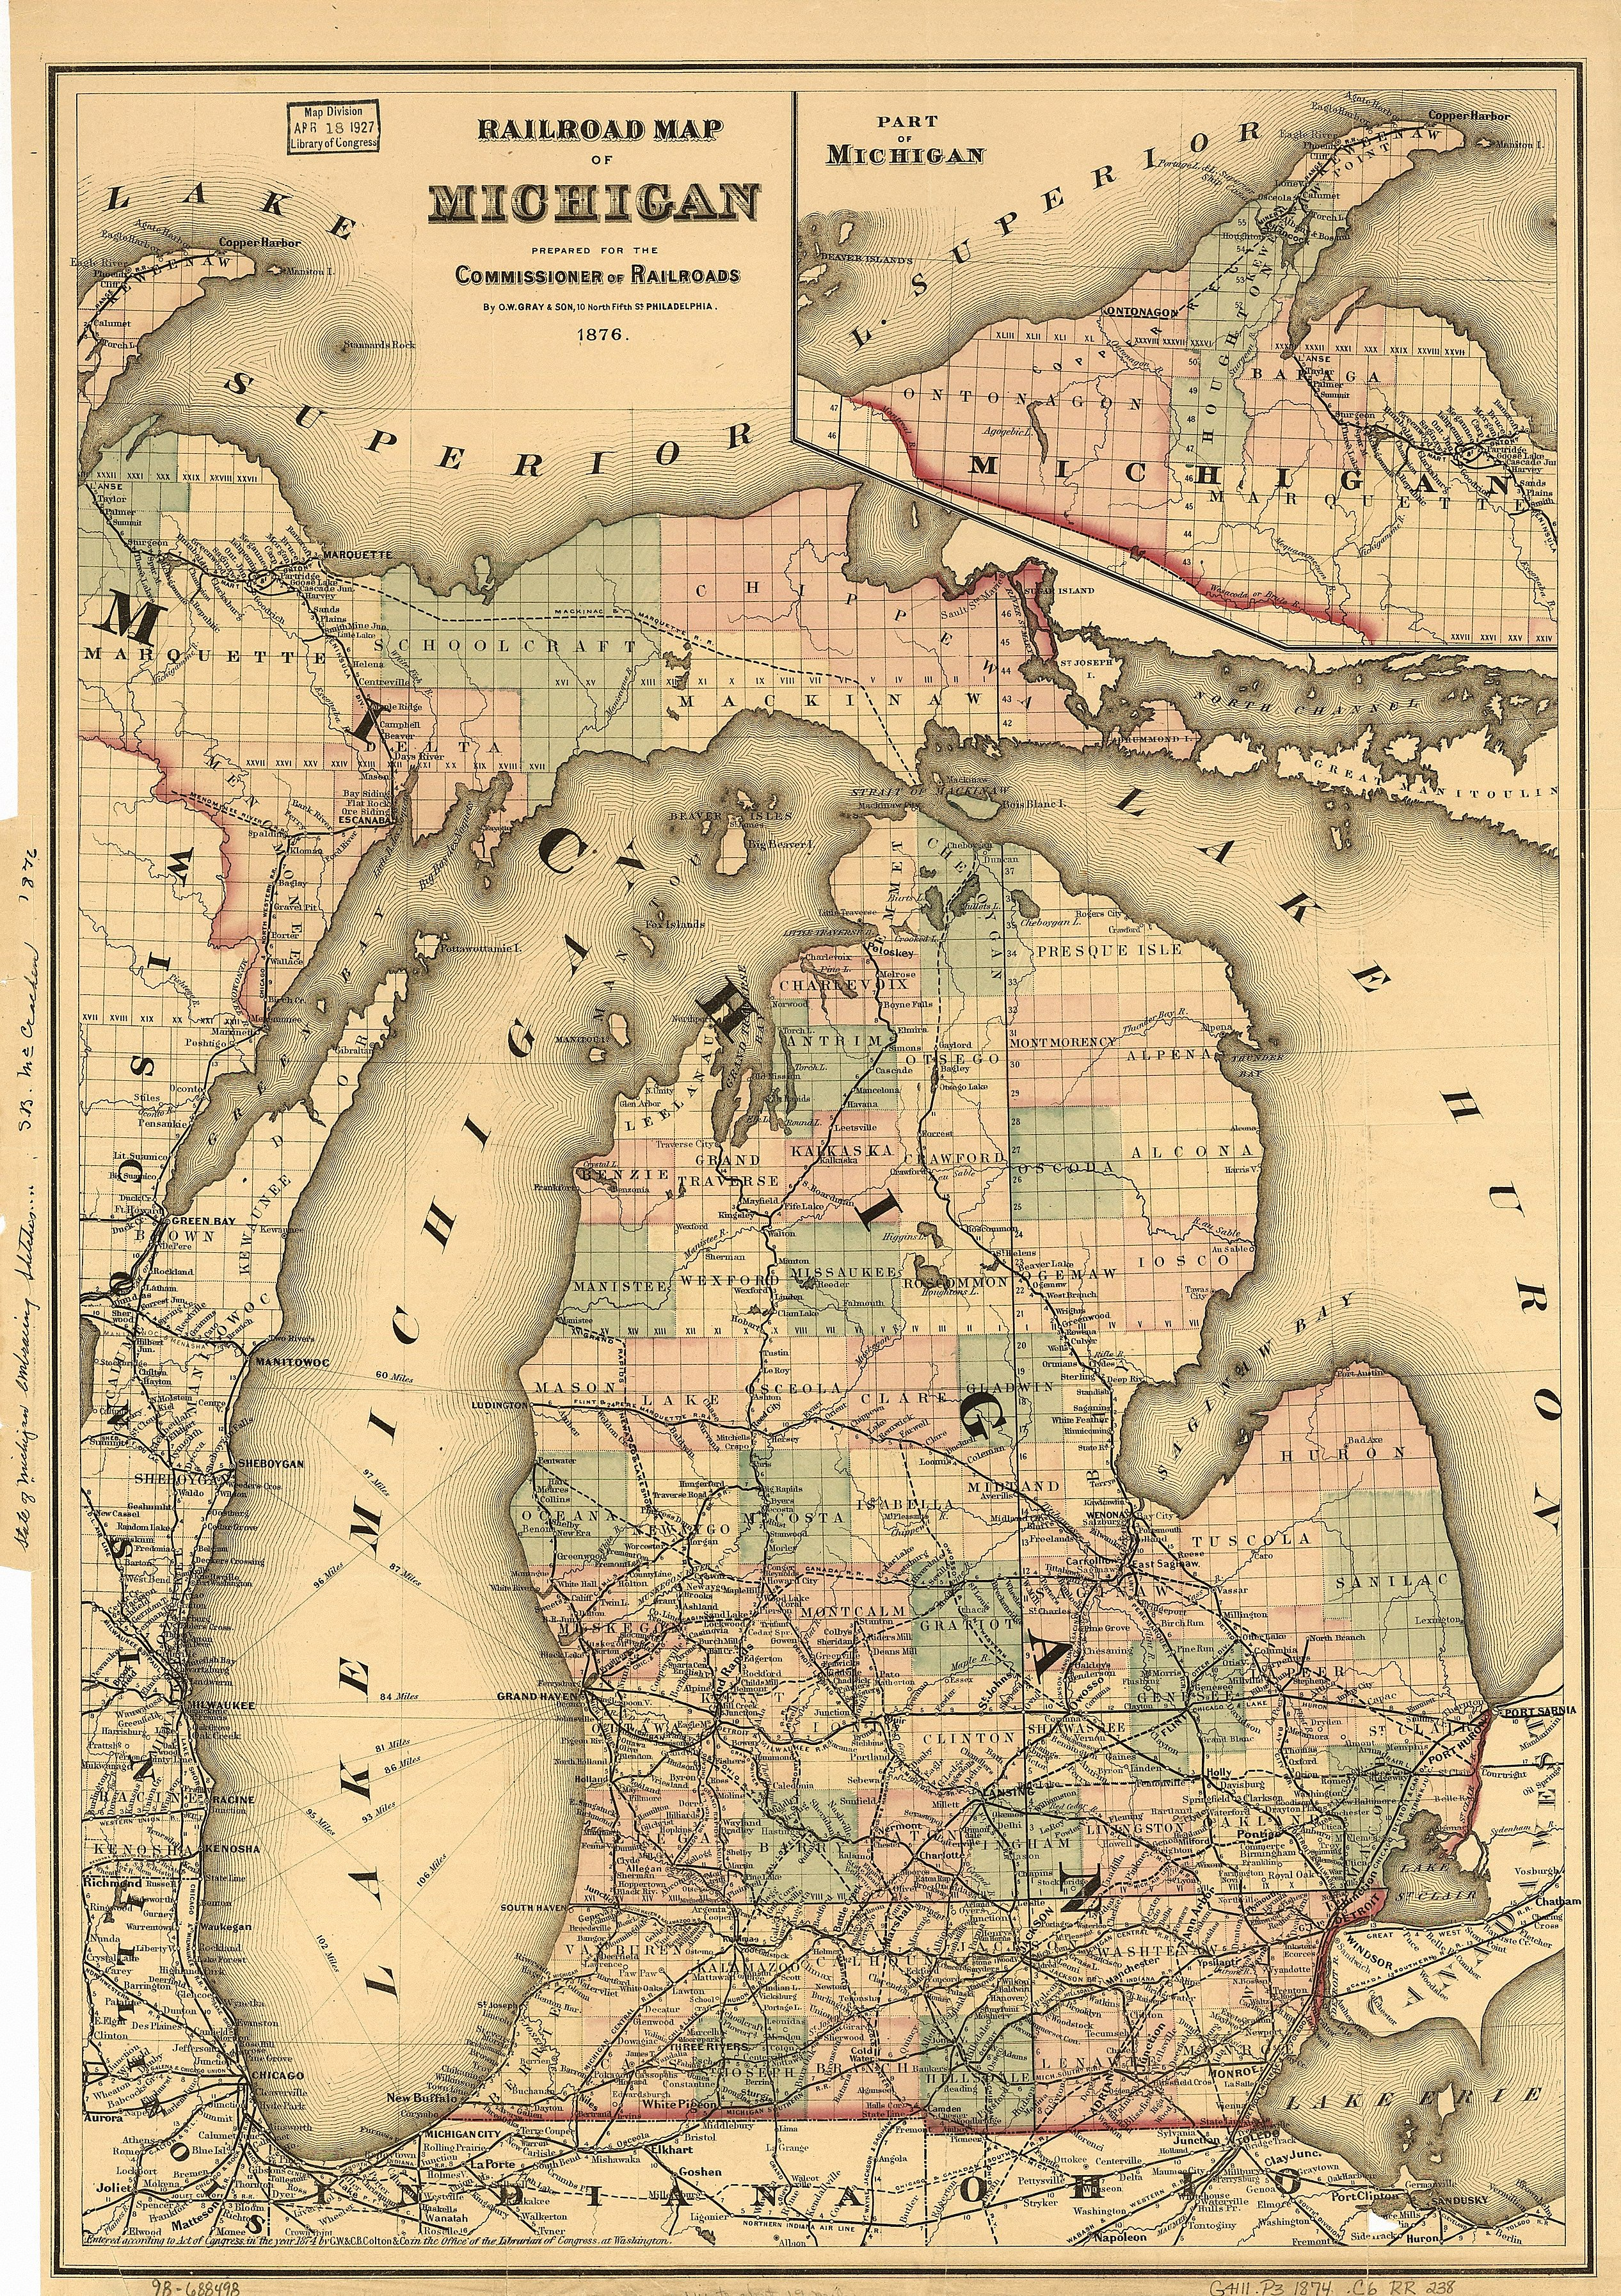 On this 1876 map, Duncan City is shown as a separate city east of Cheboygan in Cheboygan County.